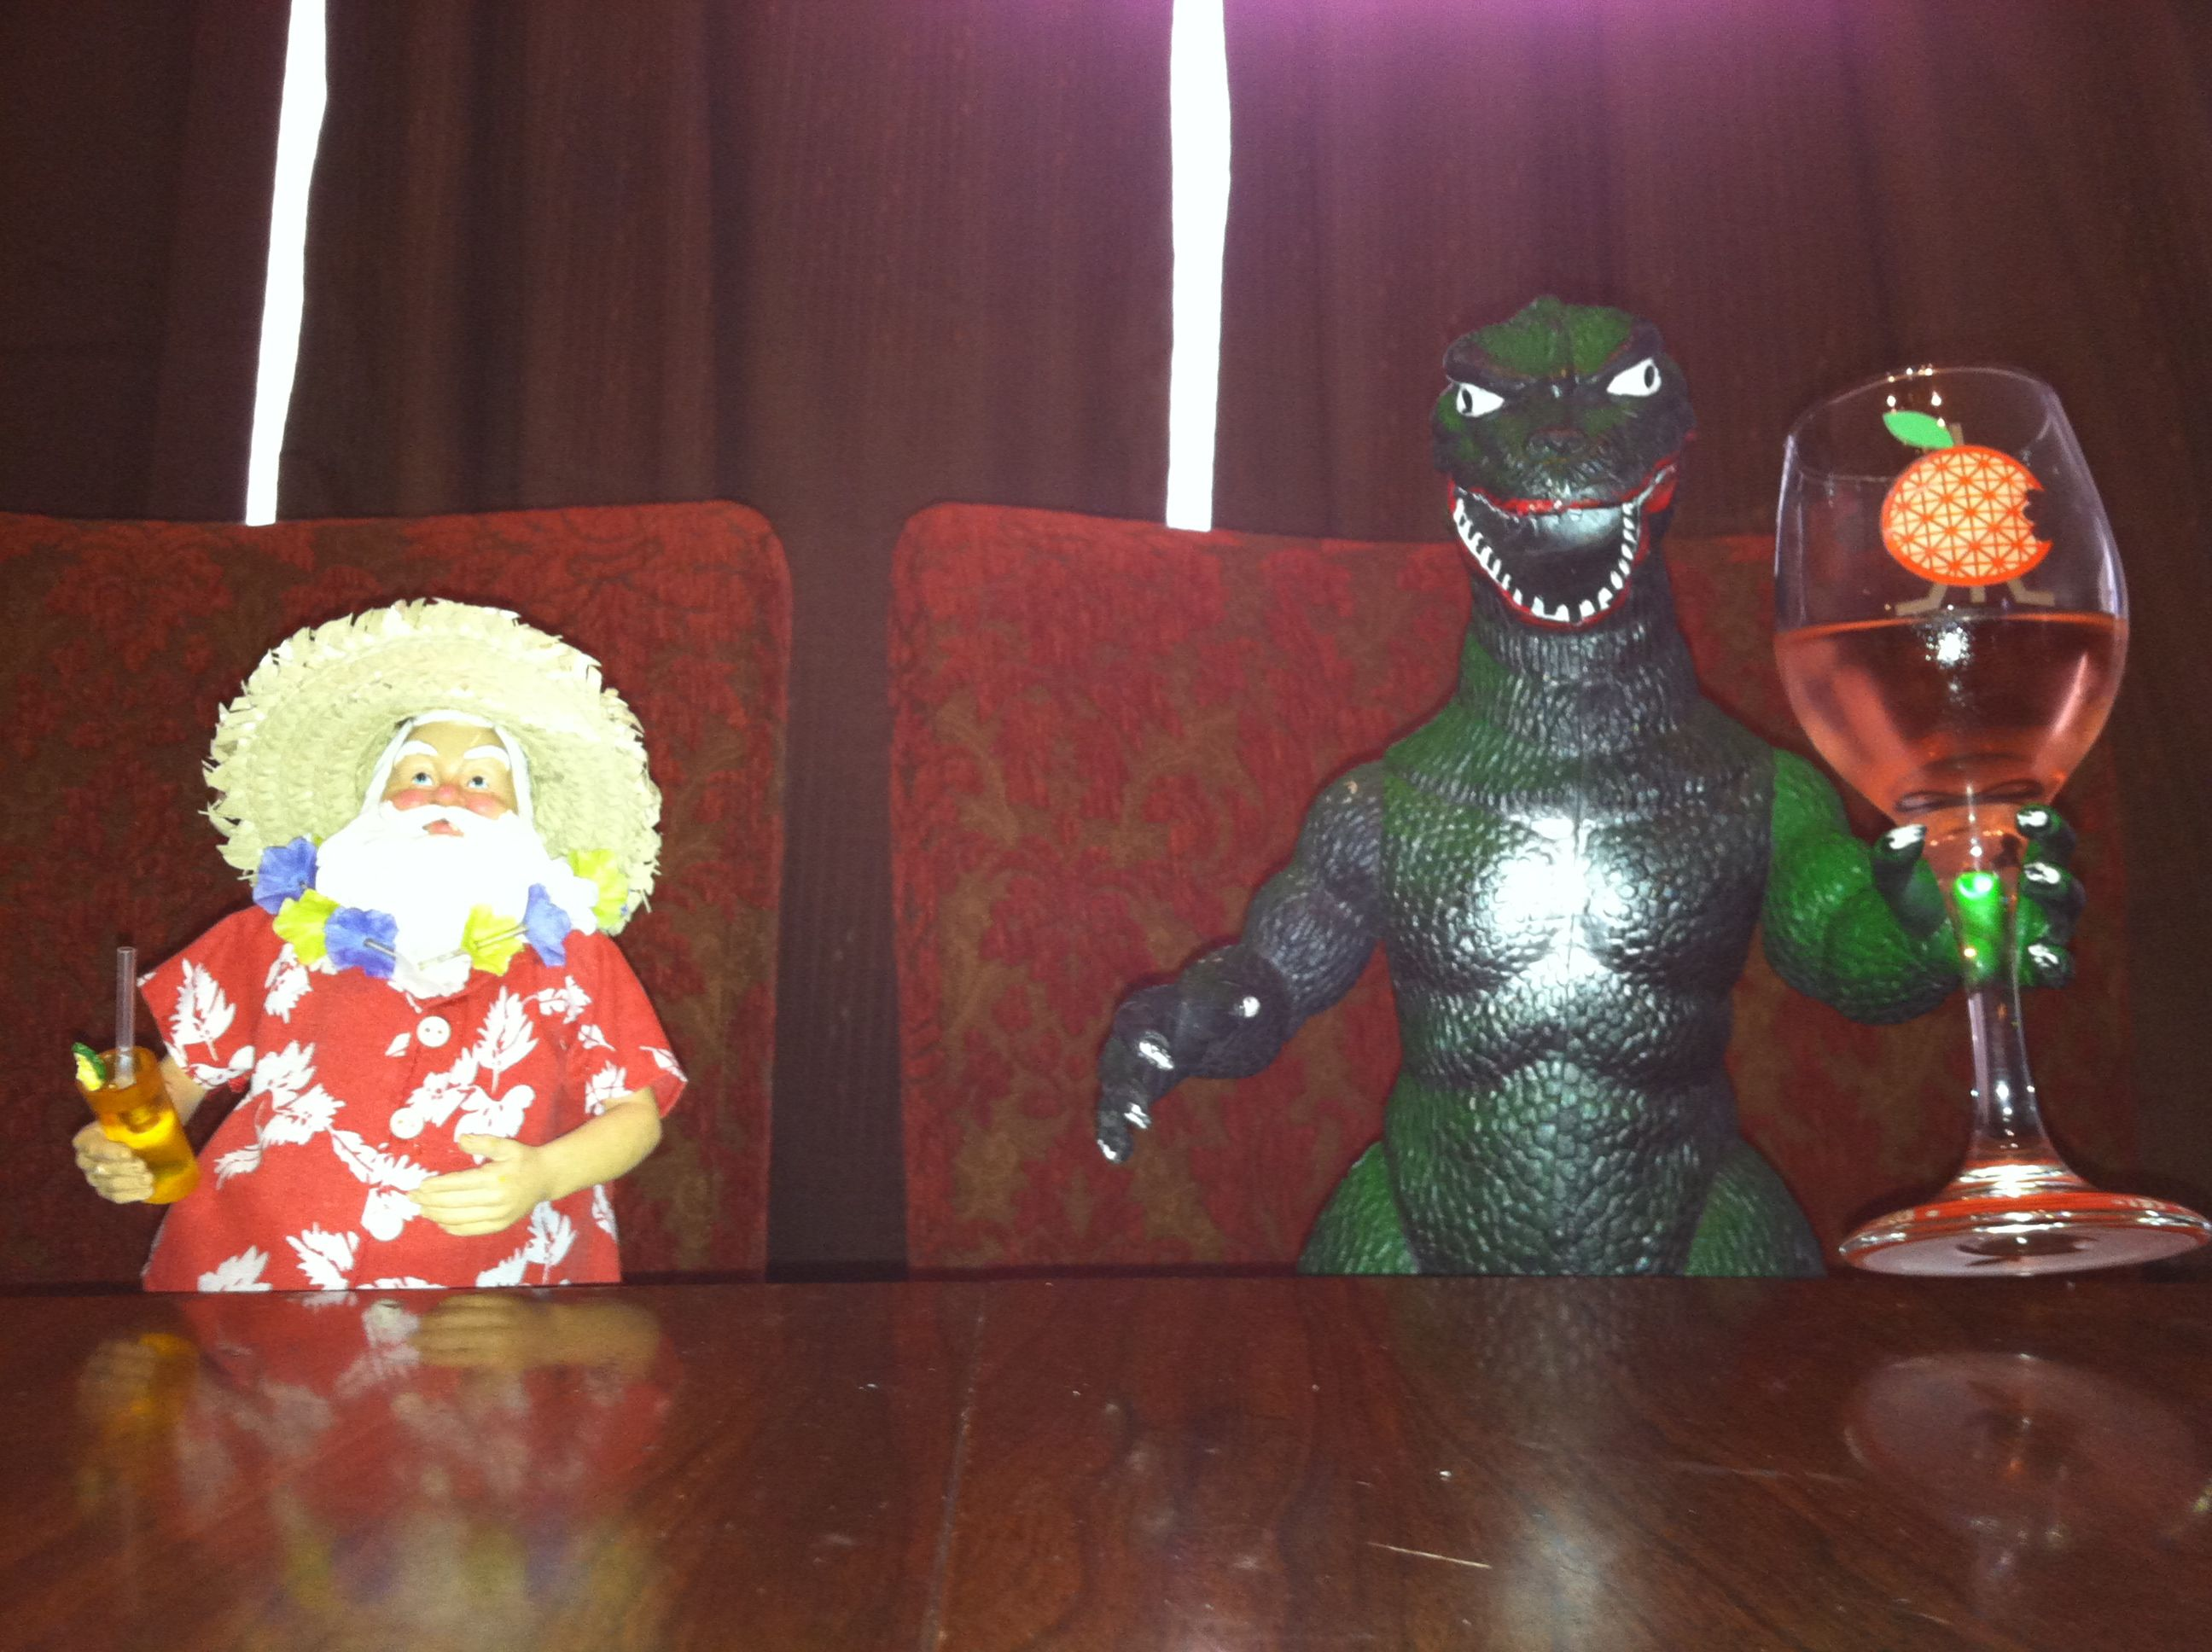 Godzilla Enjoys Hanging Out With Santa And Drinking Wine In His Downtime Hehe Visual Art Painting Hanging Out